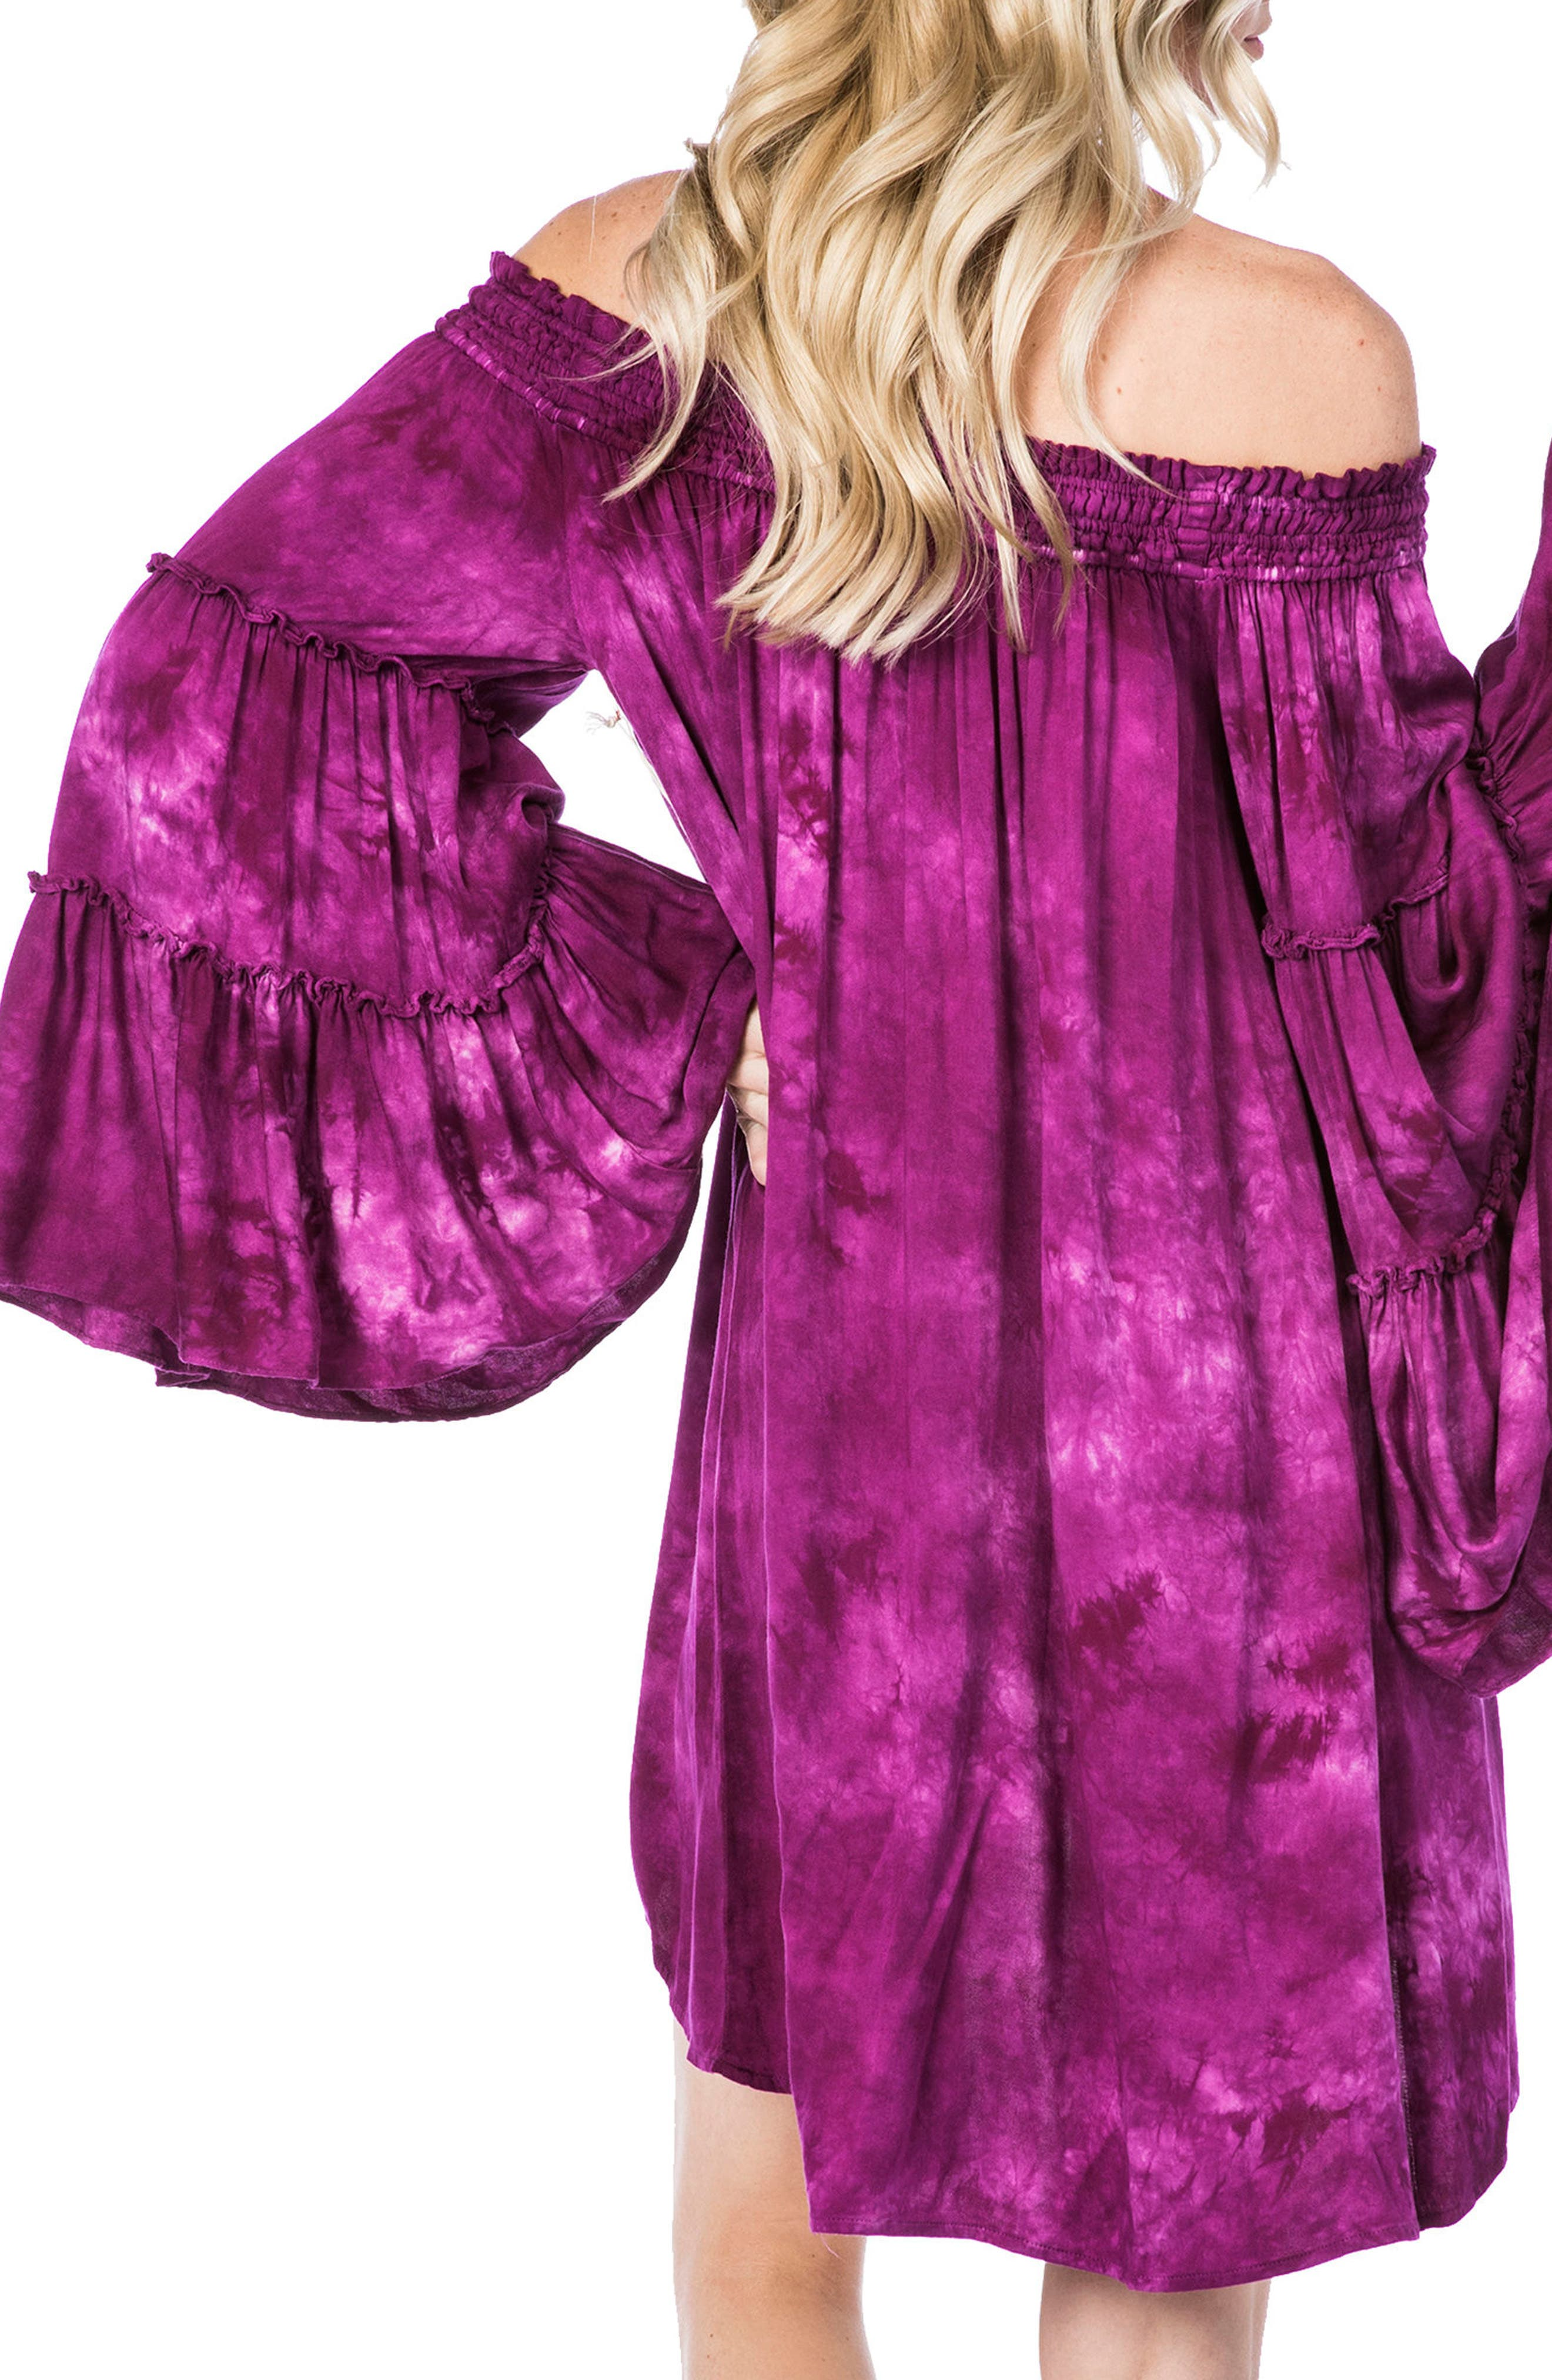 Paradise Cover-Up Dress,                             Alternate thumbnail 2, color,                             ORCHID